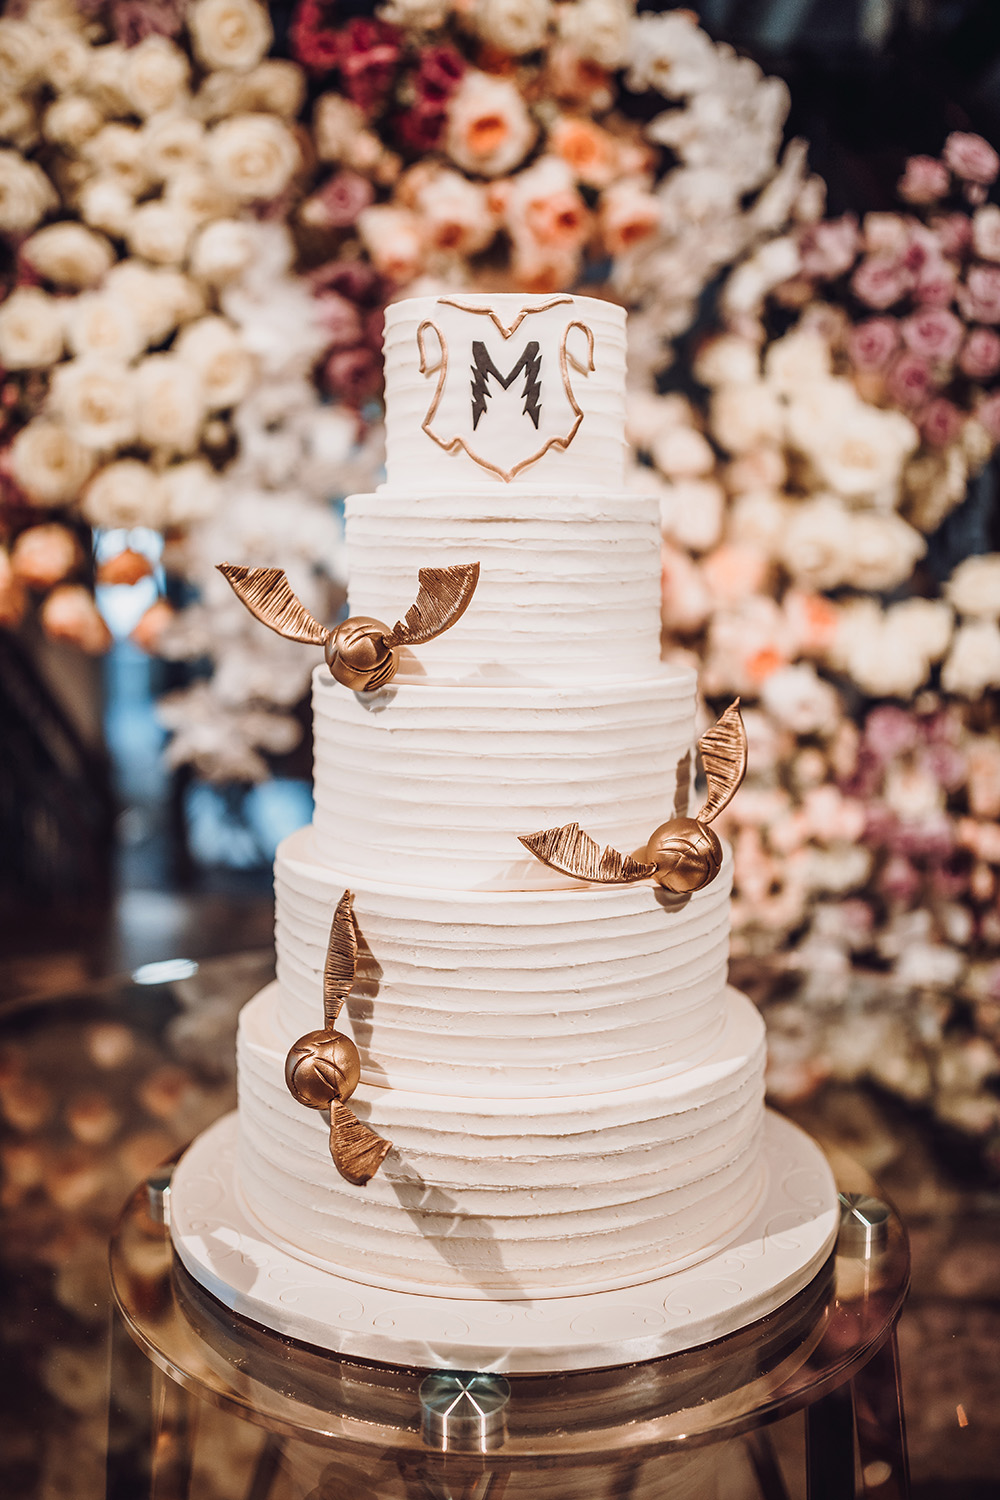 cakes by gina, custom, unique, photography, romantic, reception, snitch, harry potter